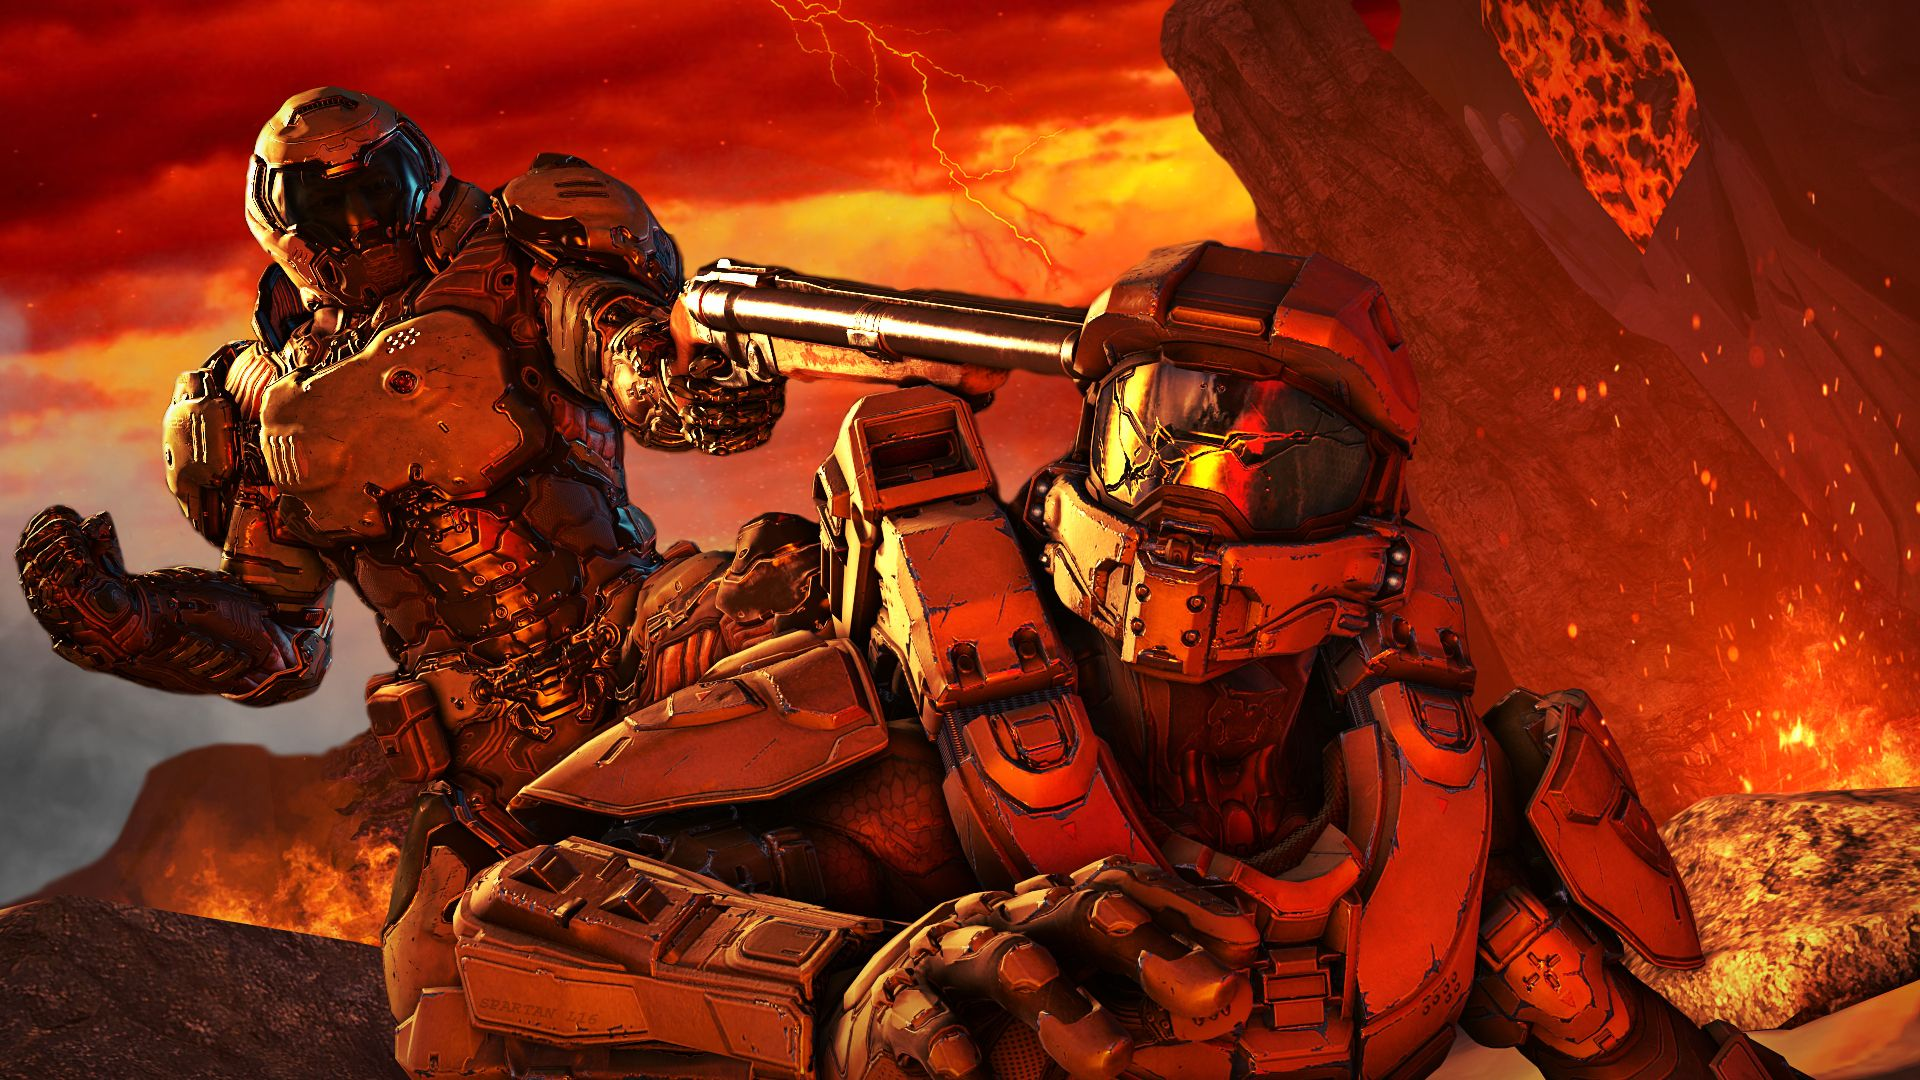 1920x1080 Doom Slayer > Master Chief : gaming